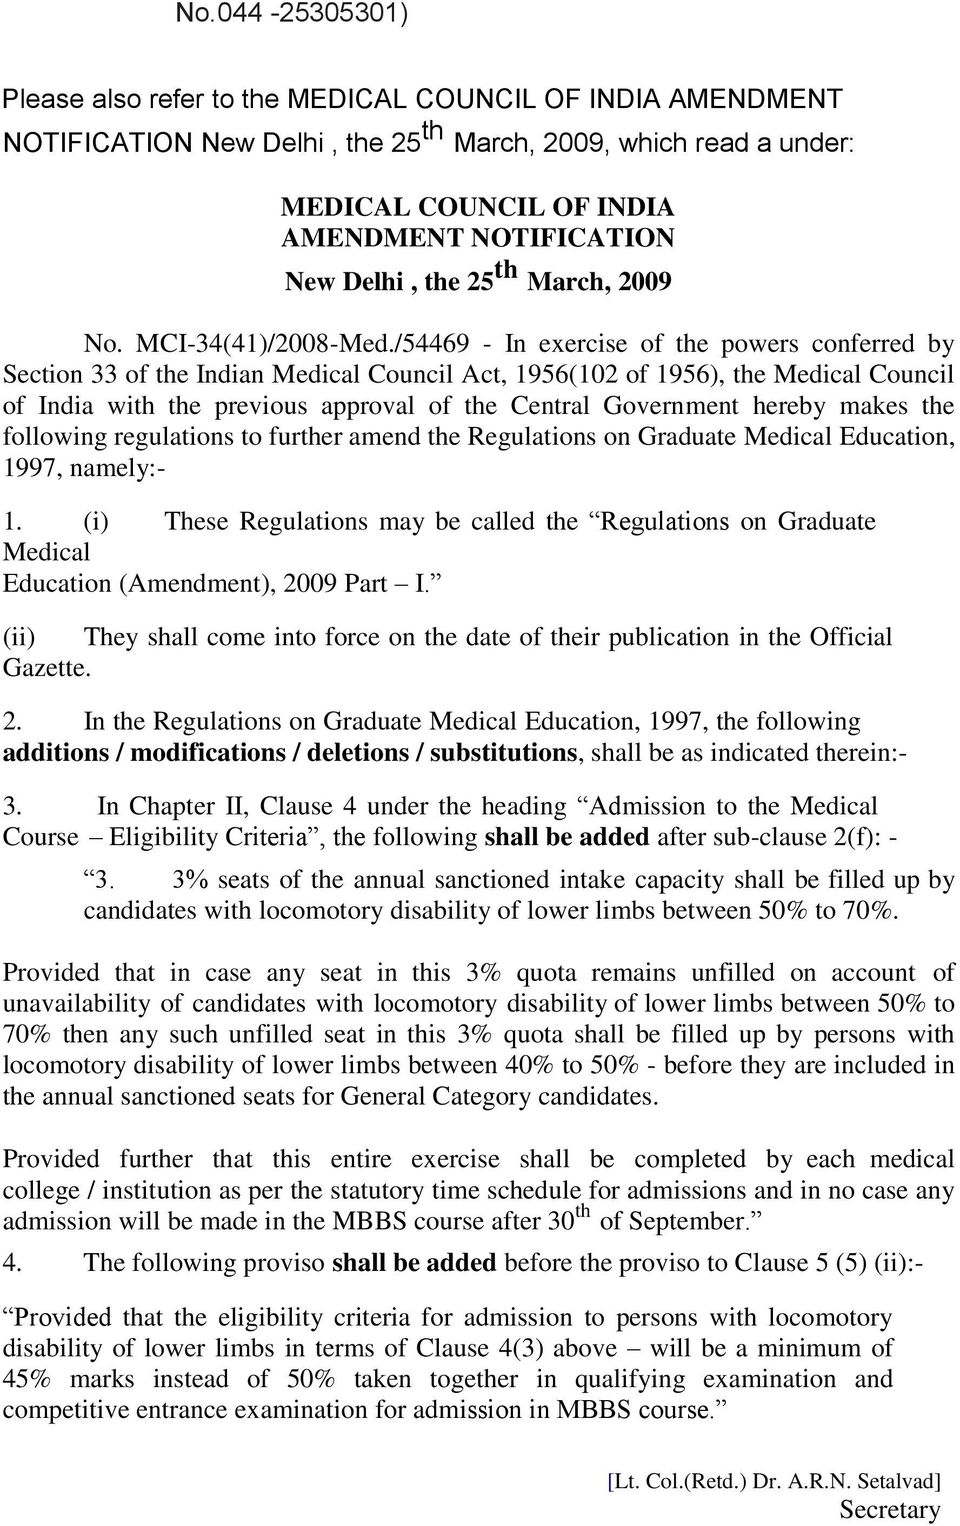 /54469 - In exercise of the powers conferred by Section 33 of the Indian Medical Council Act, 1956(102 of 1956), the Medical Council of India with the previous approval of the Central Government